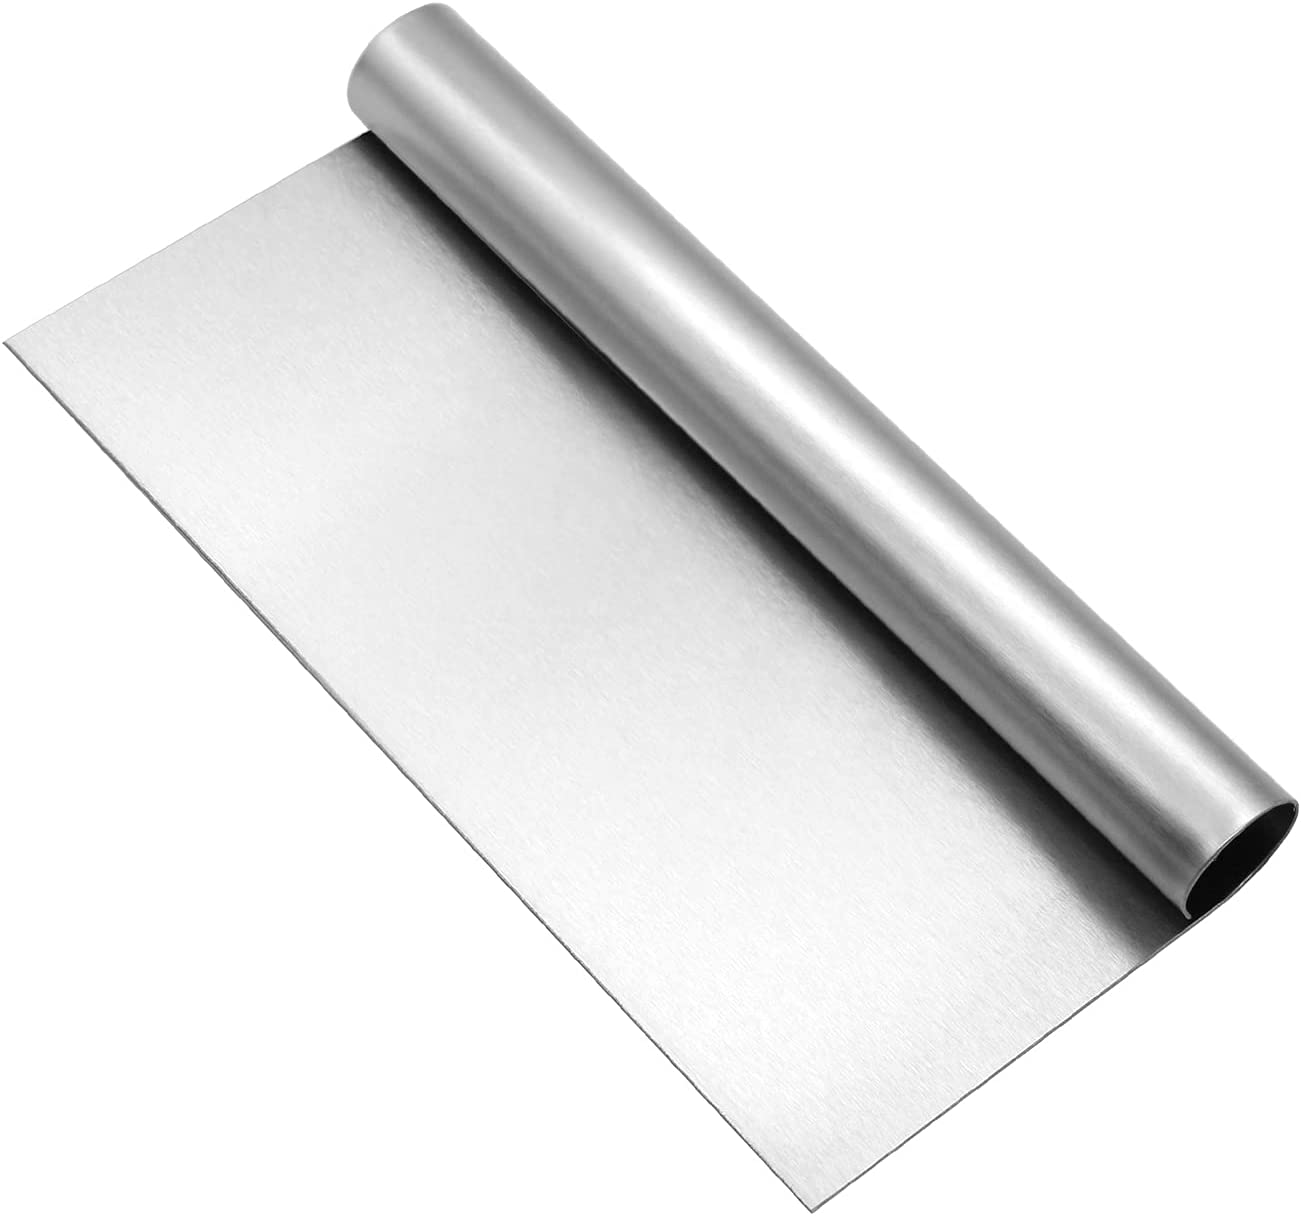 KUFUNG Stainless Steel Pastry Scraper Bench Scraper Chopper, Best as Pizza and Dough Cutter (Silver, 8 Inch)